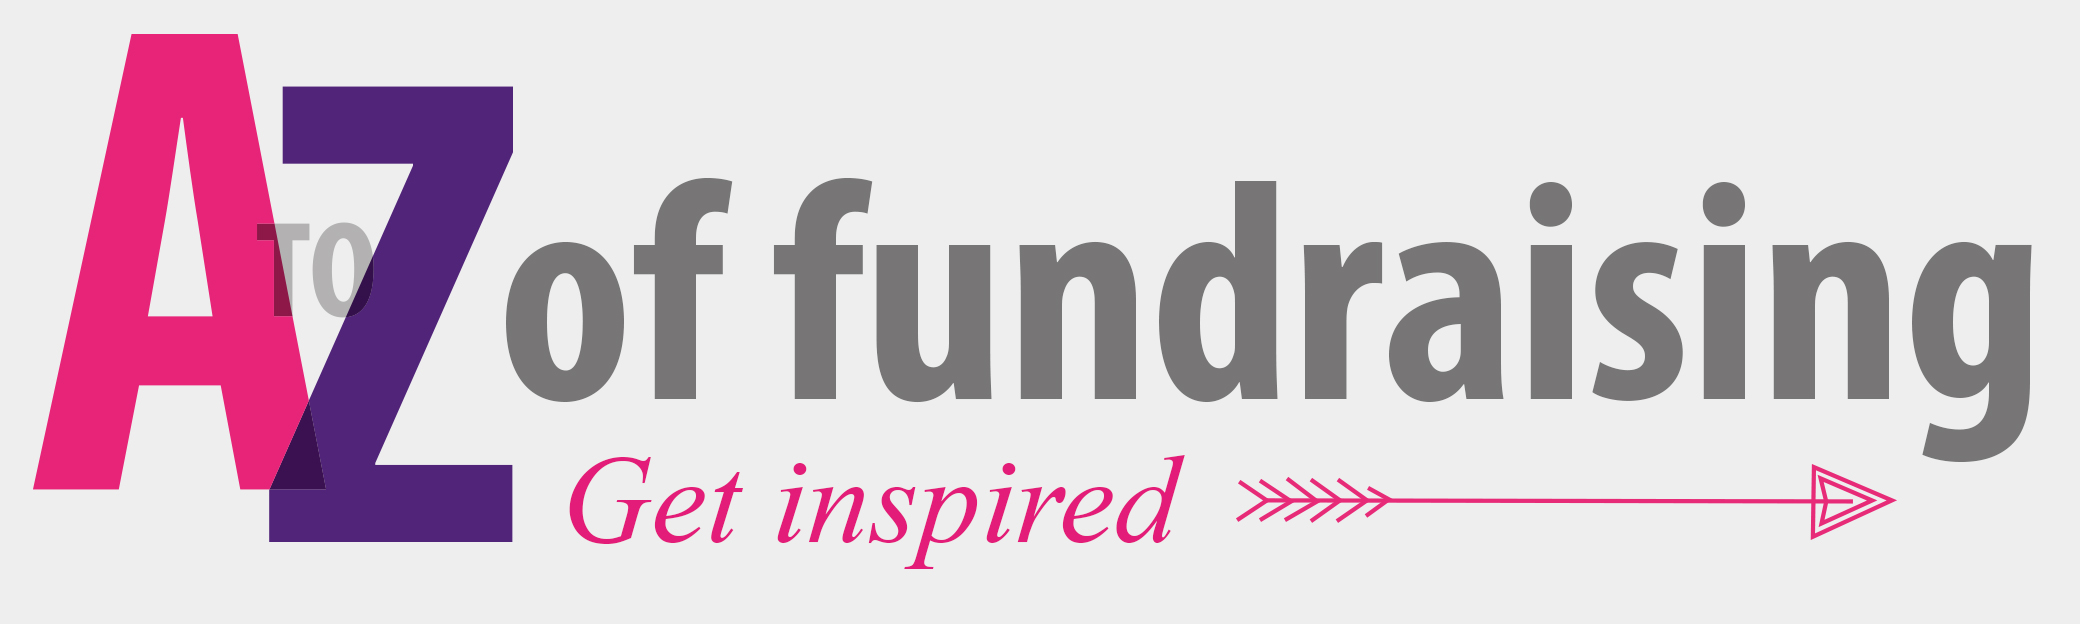 Graphic for the A to Z fundraising 'get inspired'.